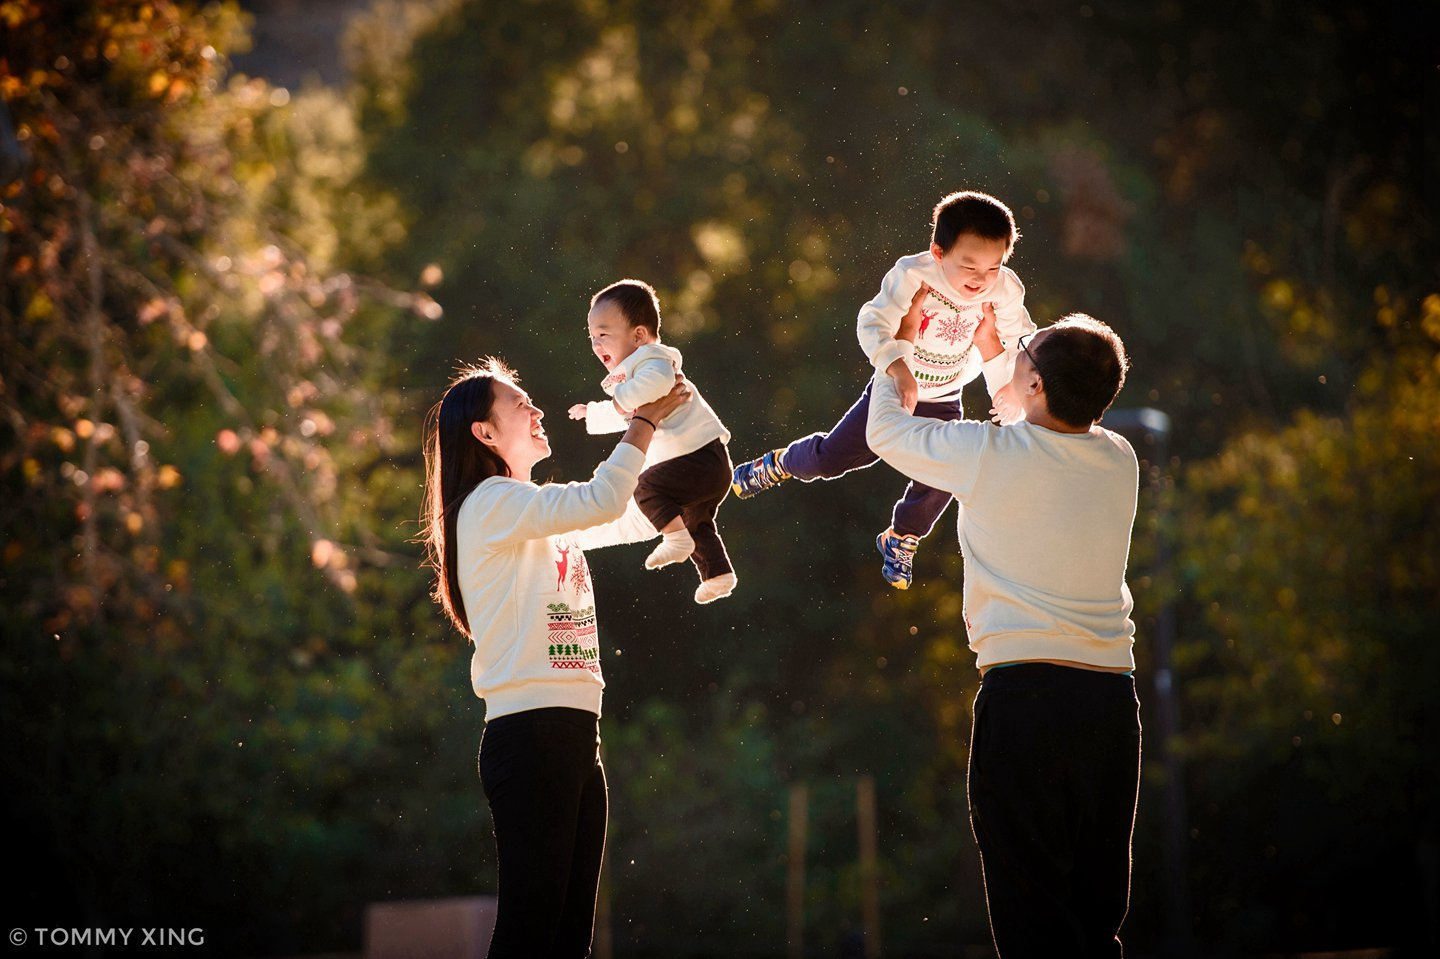 Los Angeles Family Portrait Photographer 洛杉矶家庭摄影师 Tommy Xing  04.jpg